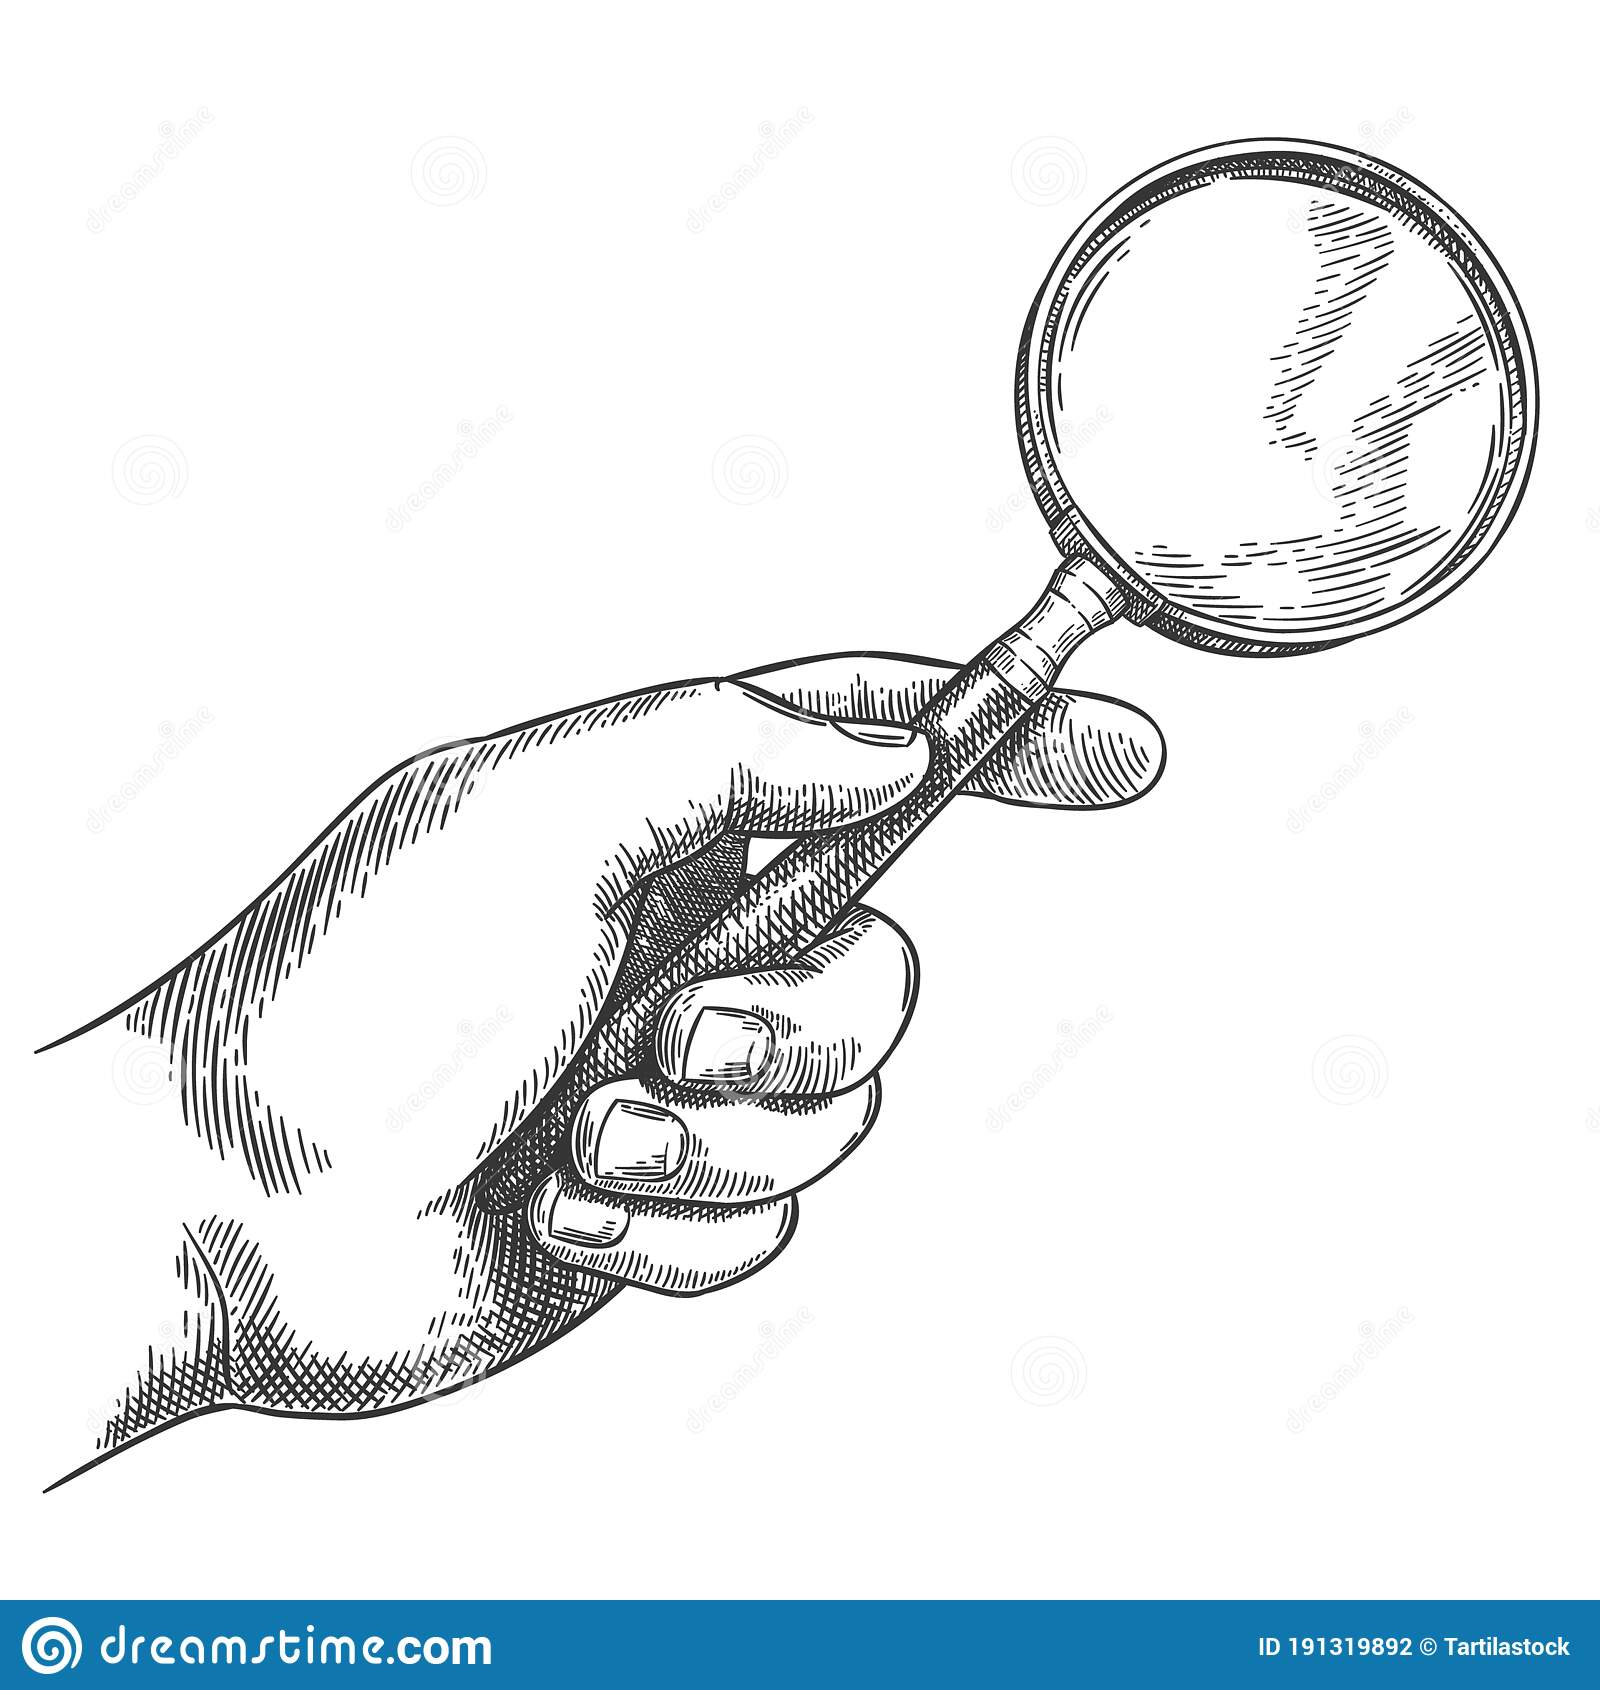 Antique Magnifier Stock Illustrations 379 Antique Magnifier Stock Illustrations Vectors Clipart Dreamstime